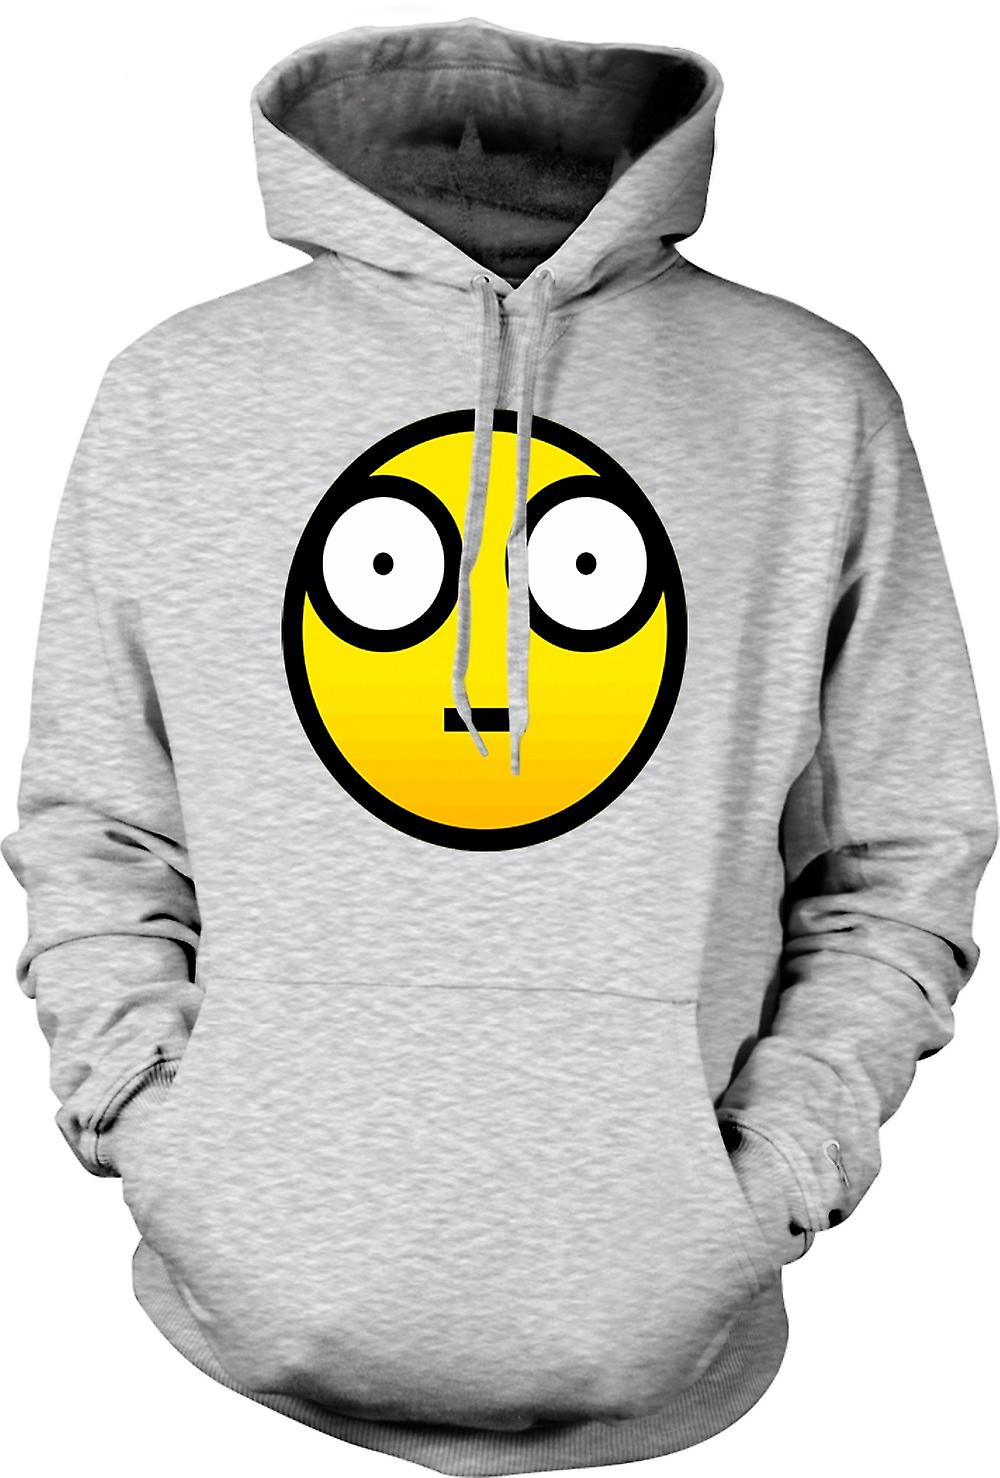 Mens Hoodie - Smiley Face - Cool Design